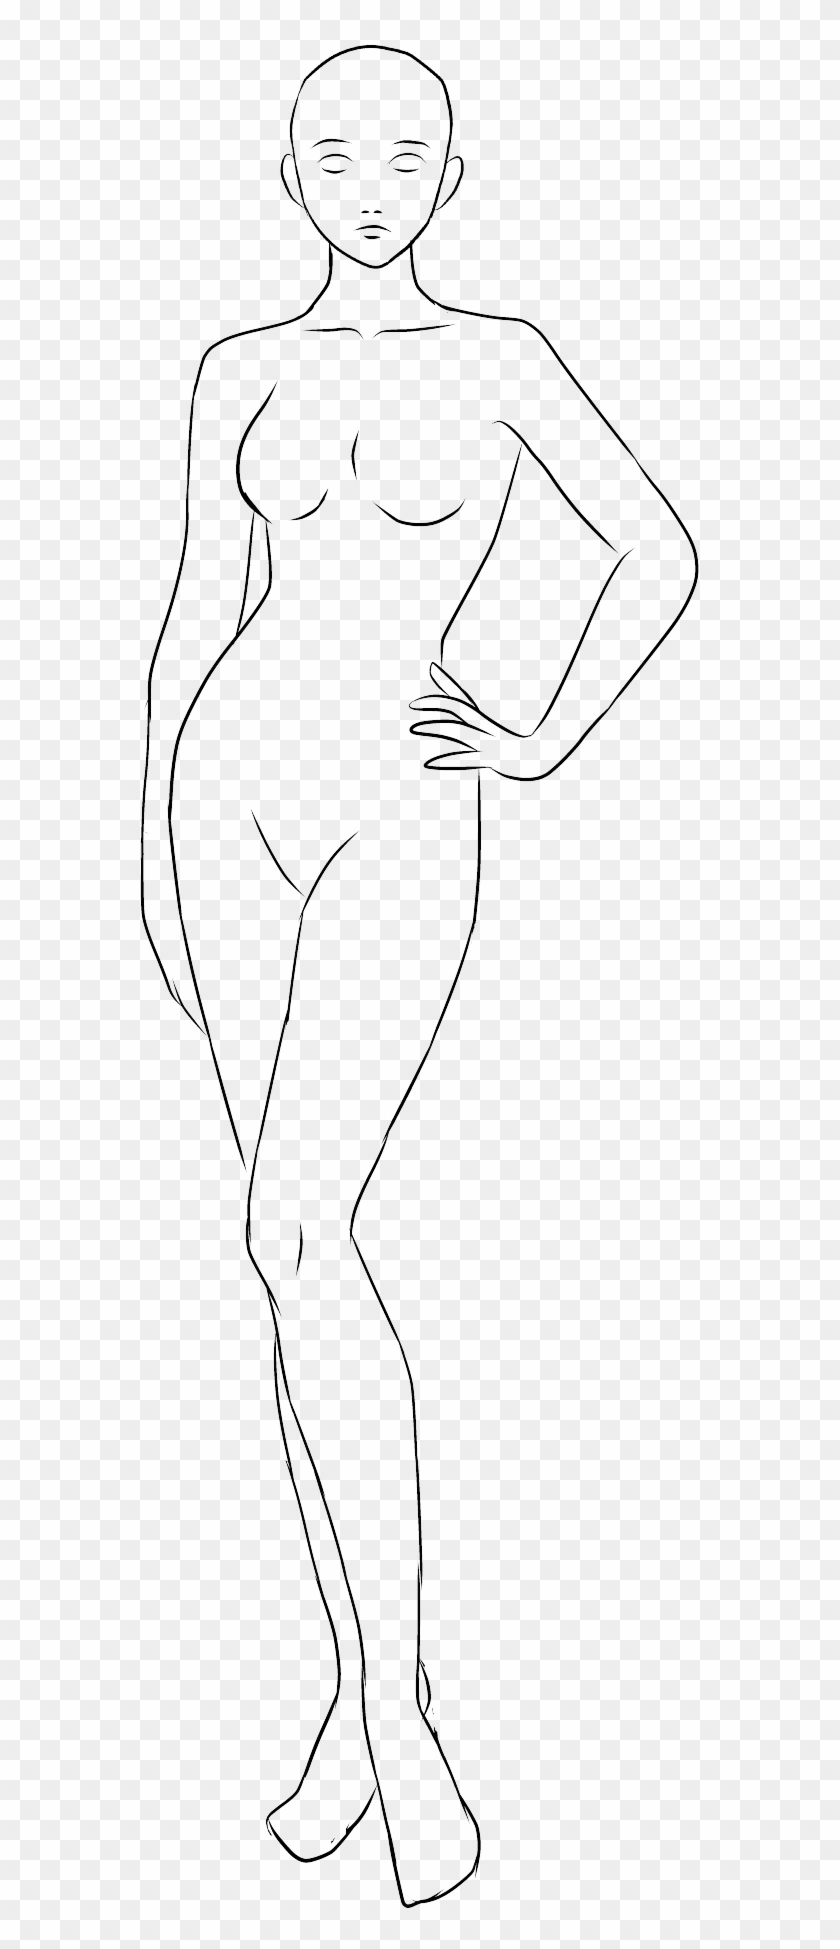 Anime Drawing Base Female Anime Collection - Female Human Base Drawing Clipart #3840847